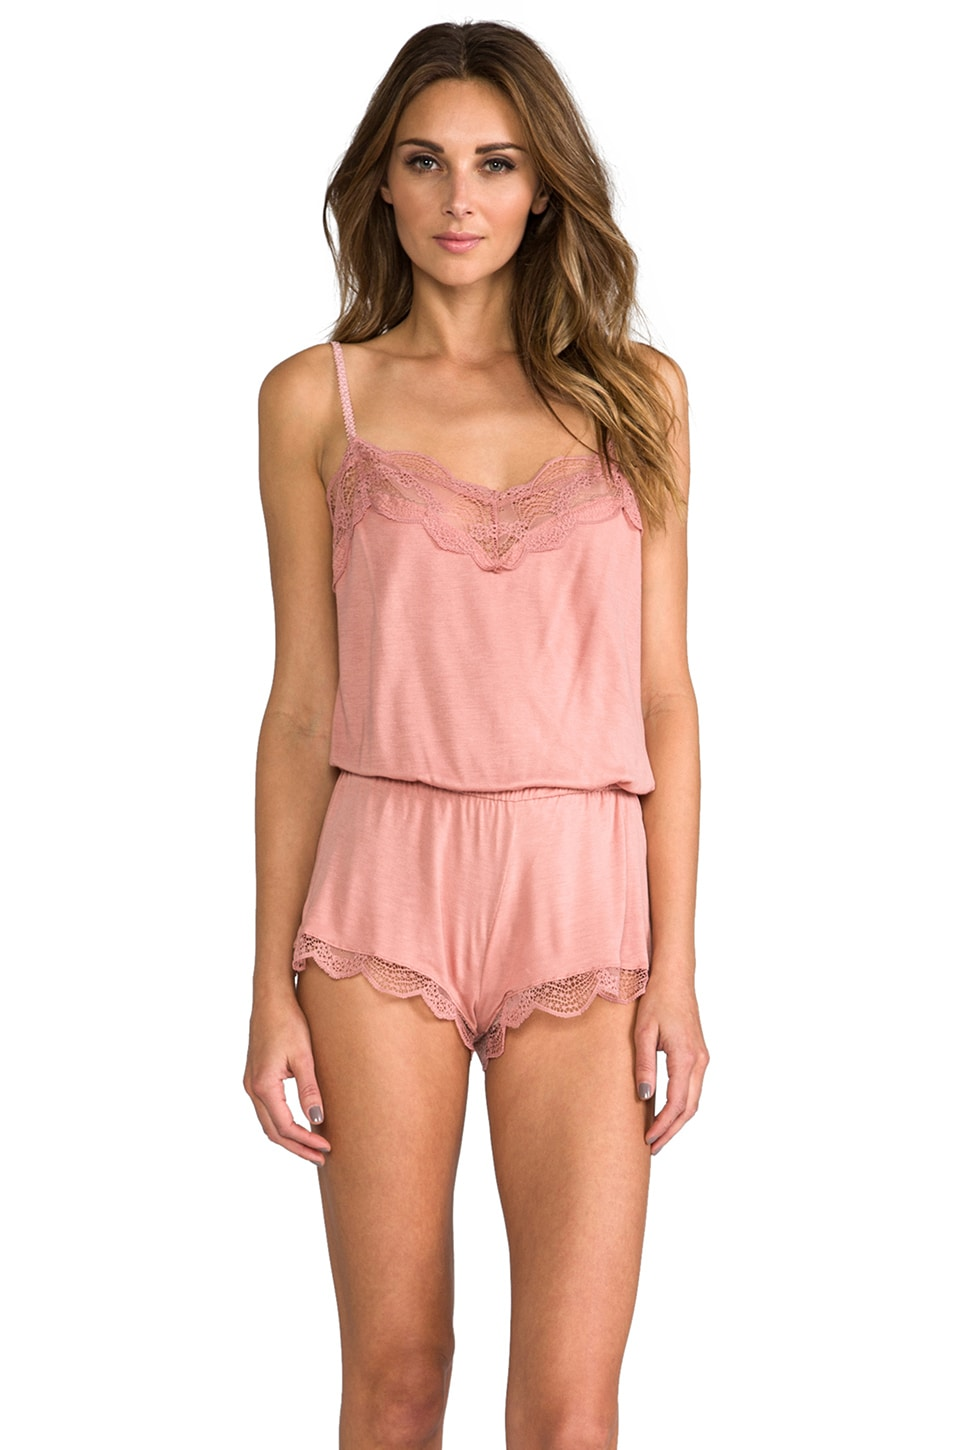 eberjey Estelle Teddy Romper in French Rose